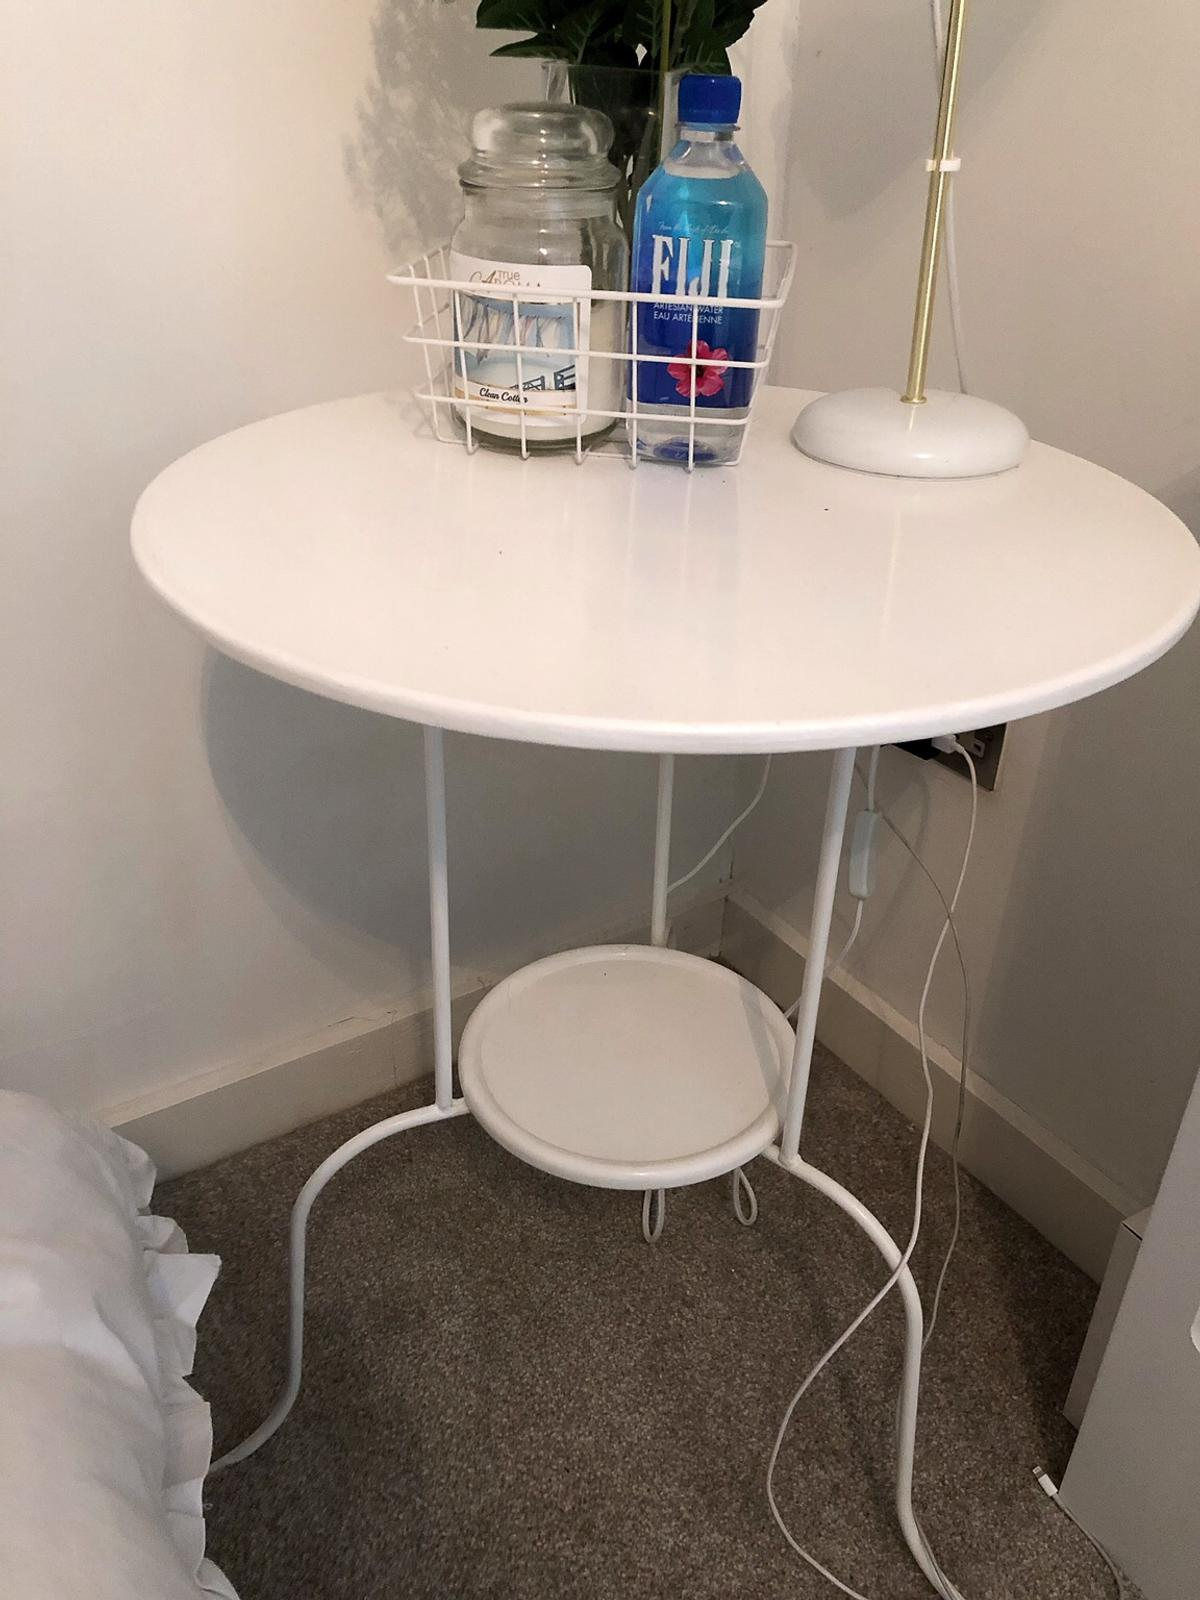 Picture of: White Metal Bedside Table Ikea Coffee Table In Le2 Leicester For 10 00 For Sale Shpock